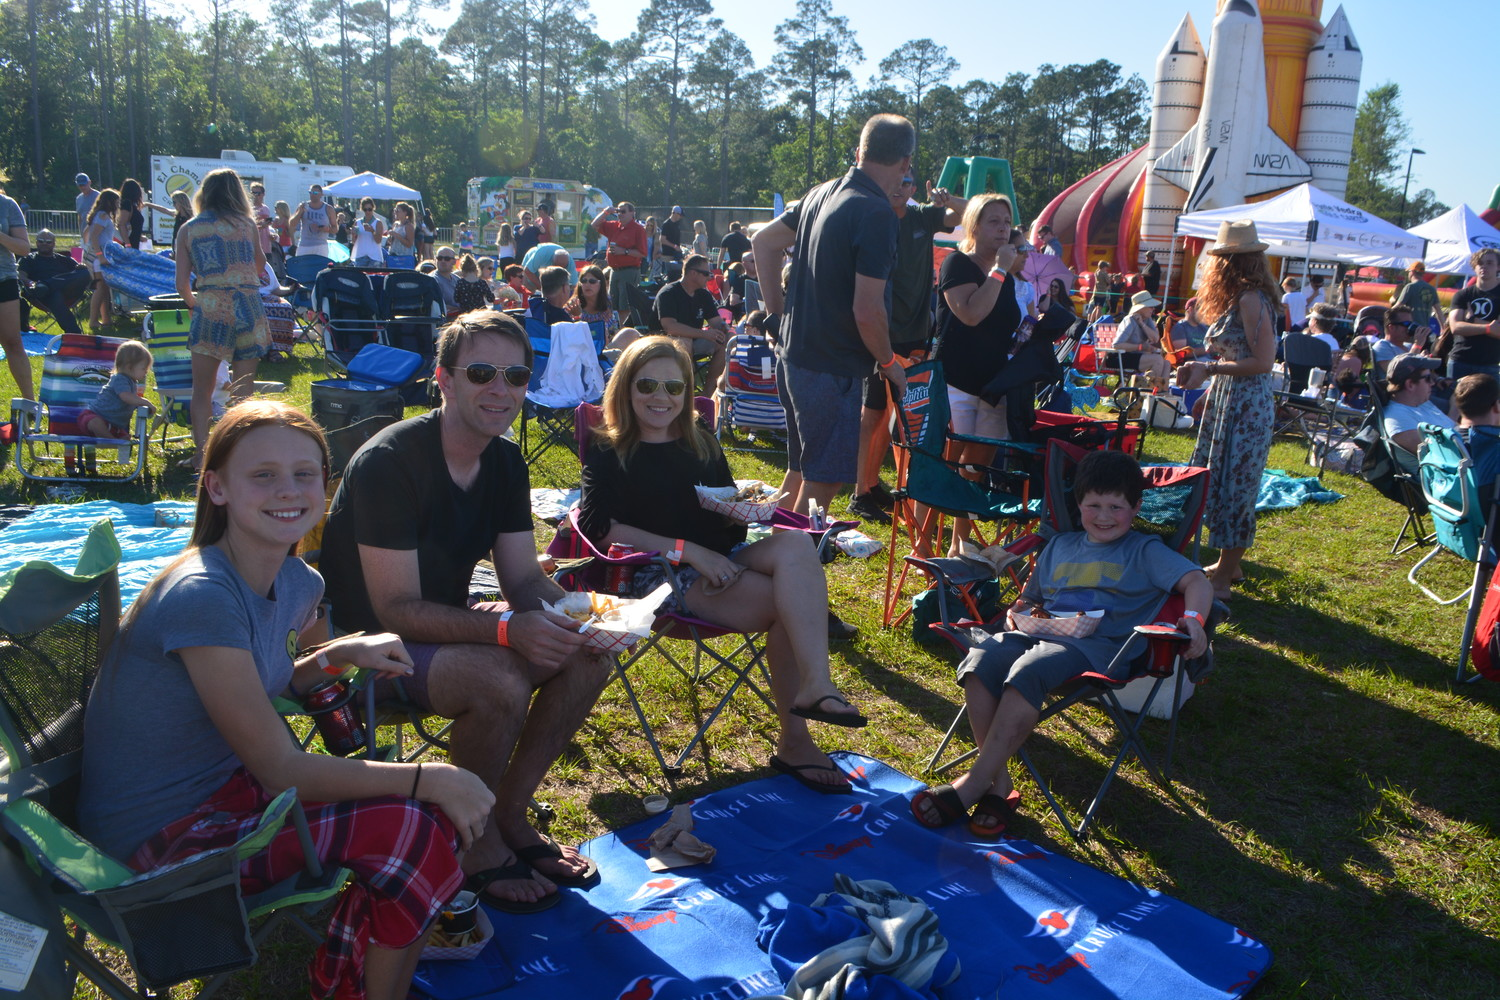 Todd and Mandy Kowalski take in the Roscolusa Songwriters Festival with their children.